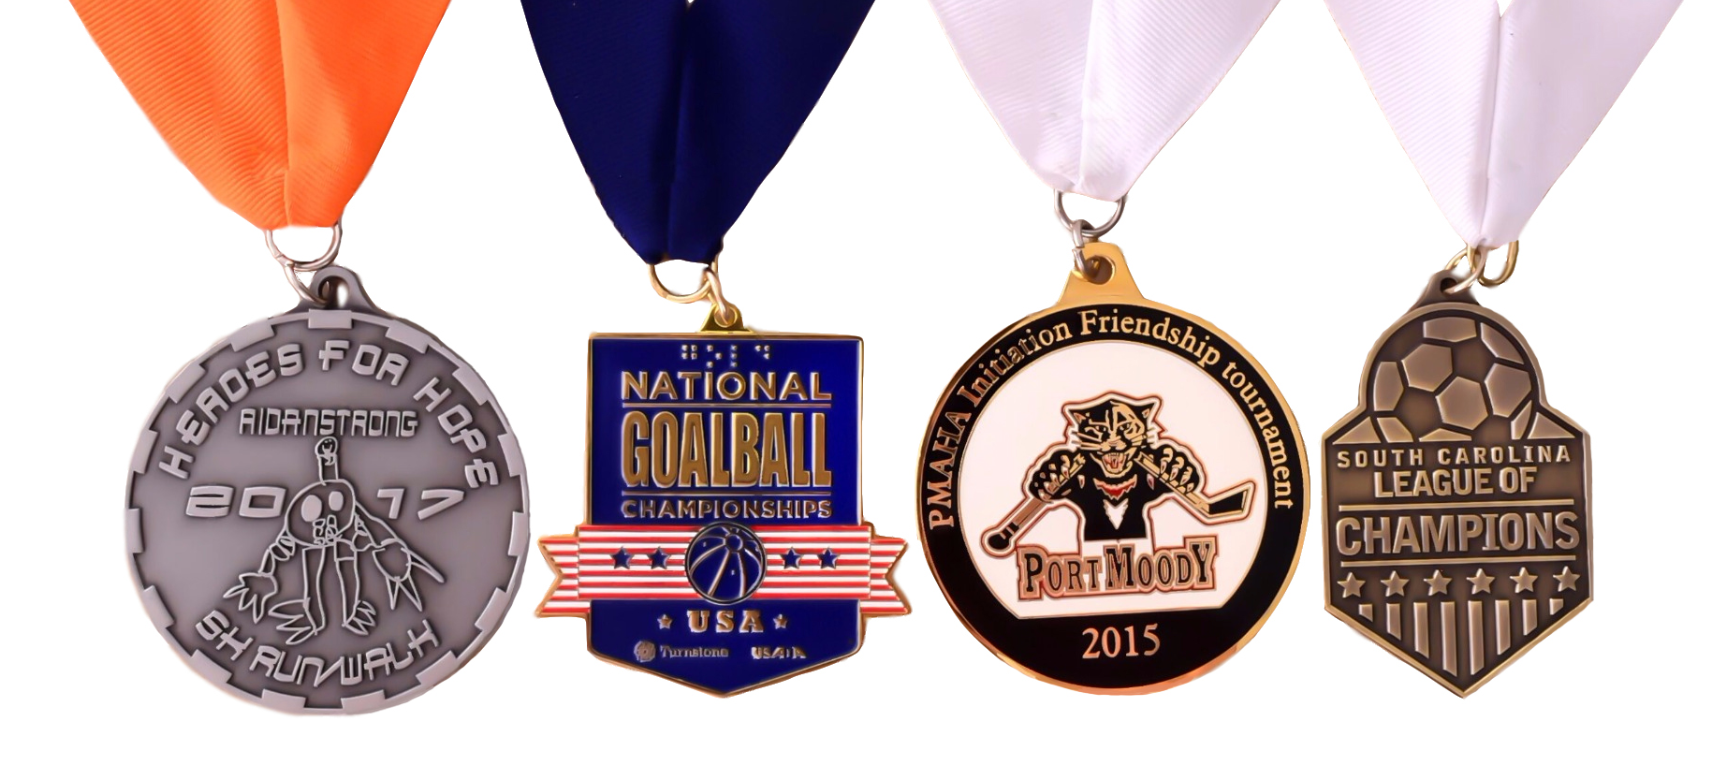 Custom Medals What's It?